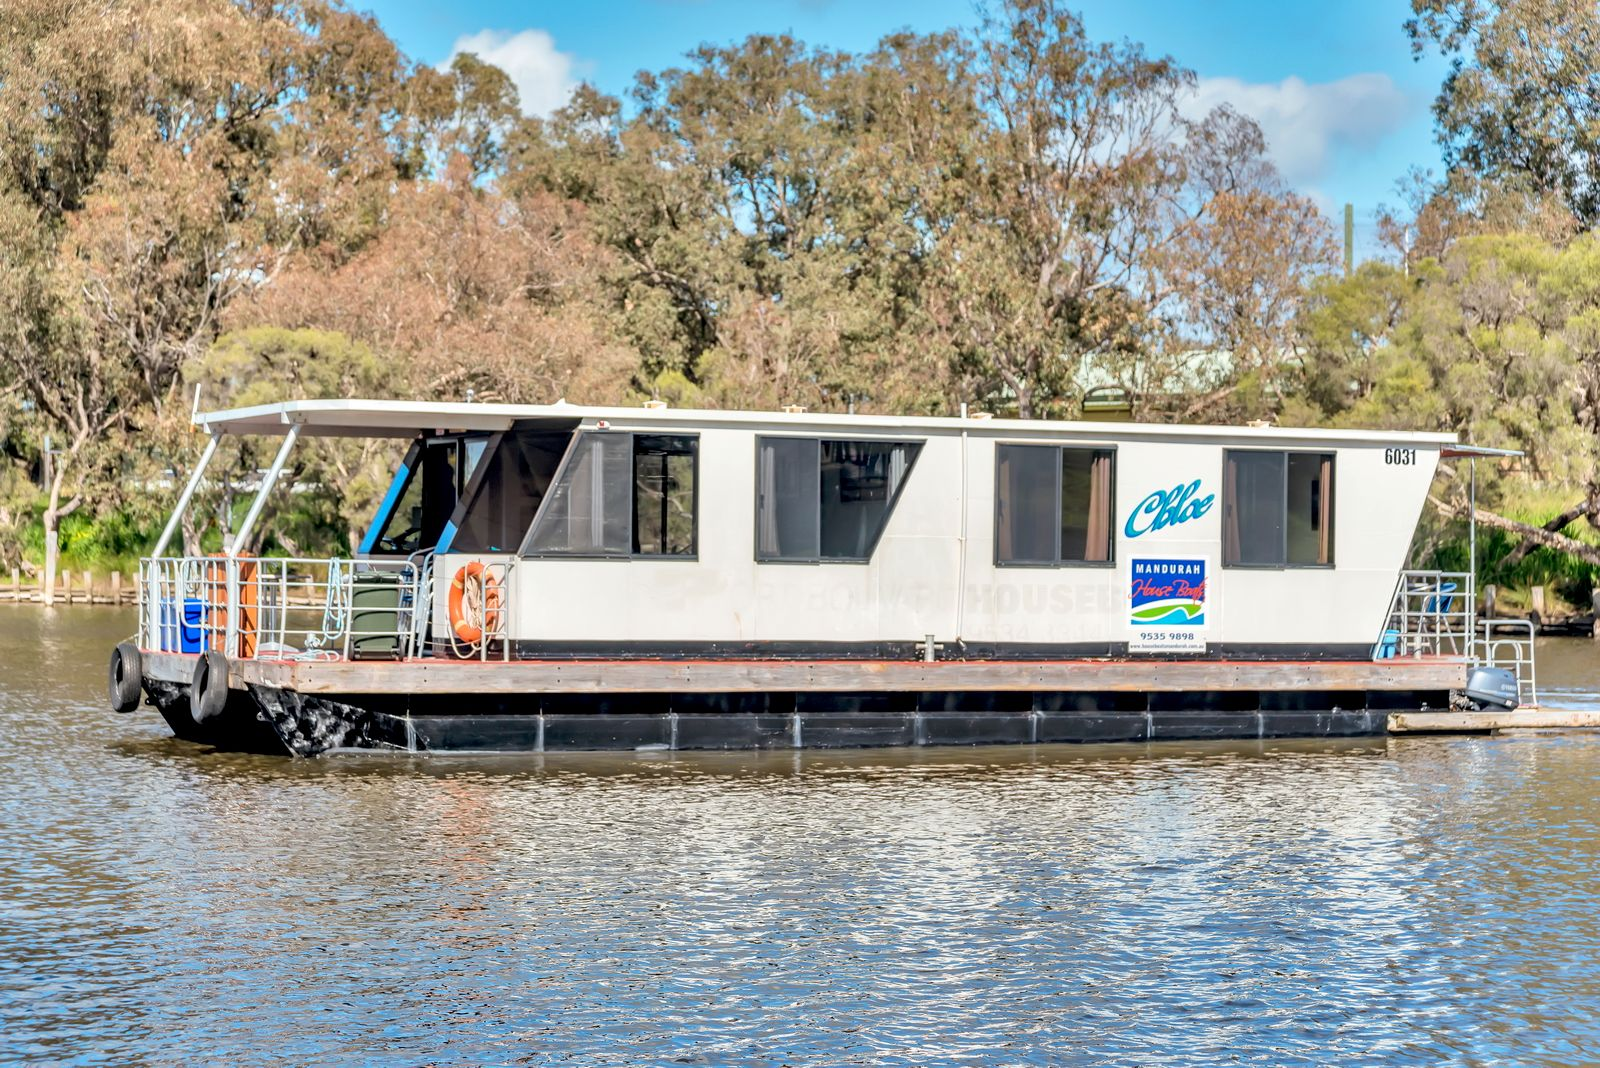 Mandurah Holidays on board a Houseboat in WA